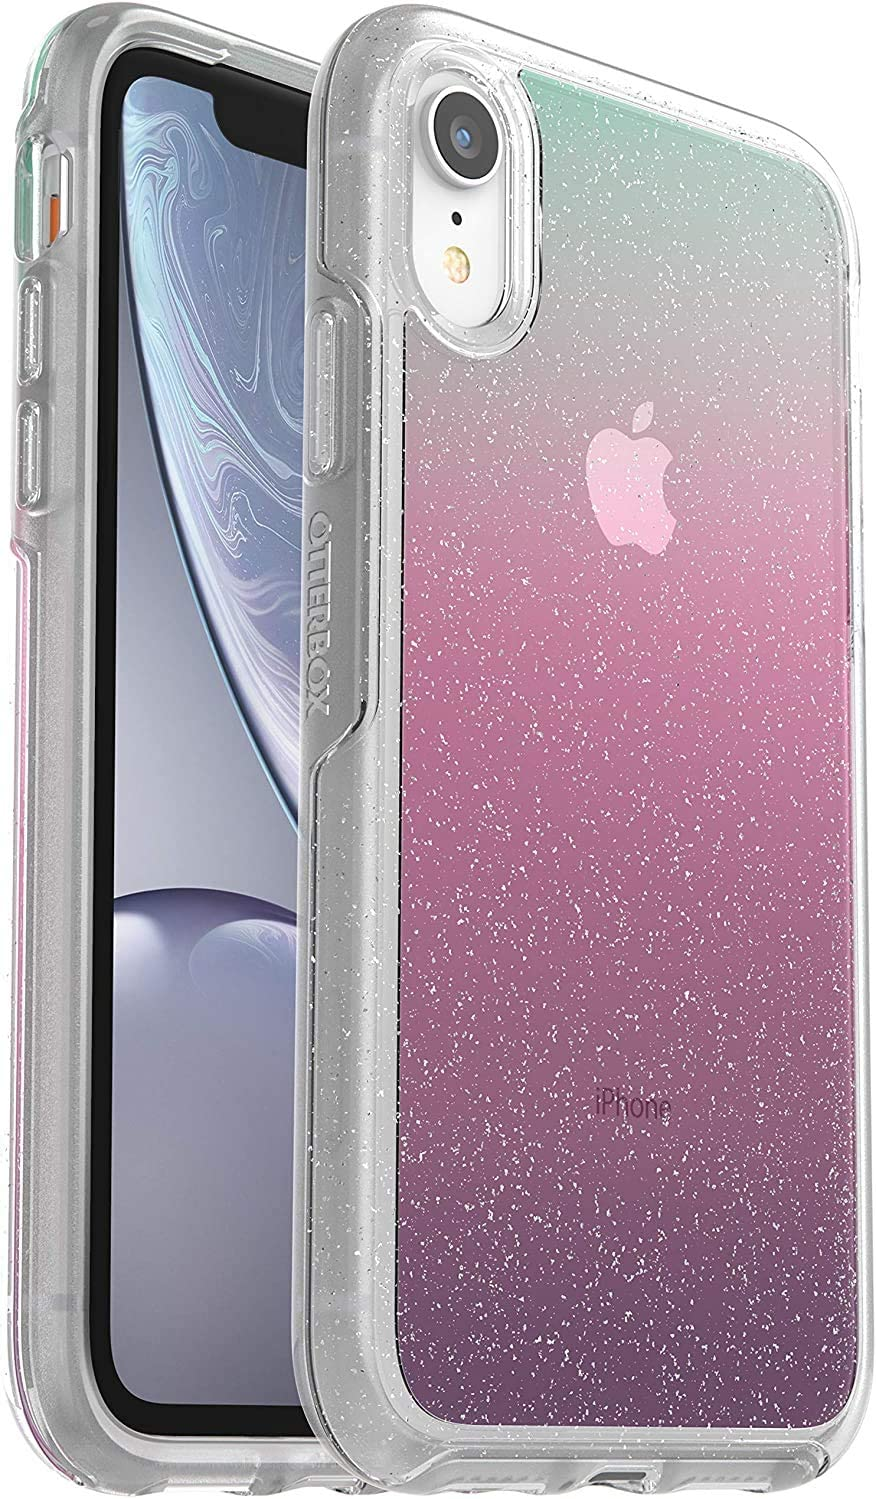 OtterBox Symmetry Series Case for iPhone XR (ONLY) Non-Retail Packaging - Gradient Energy